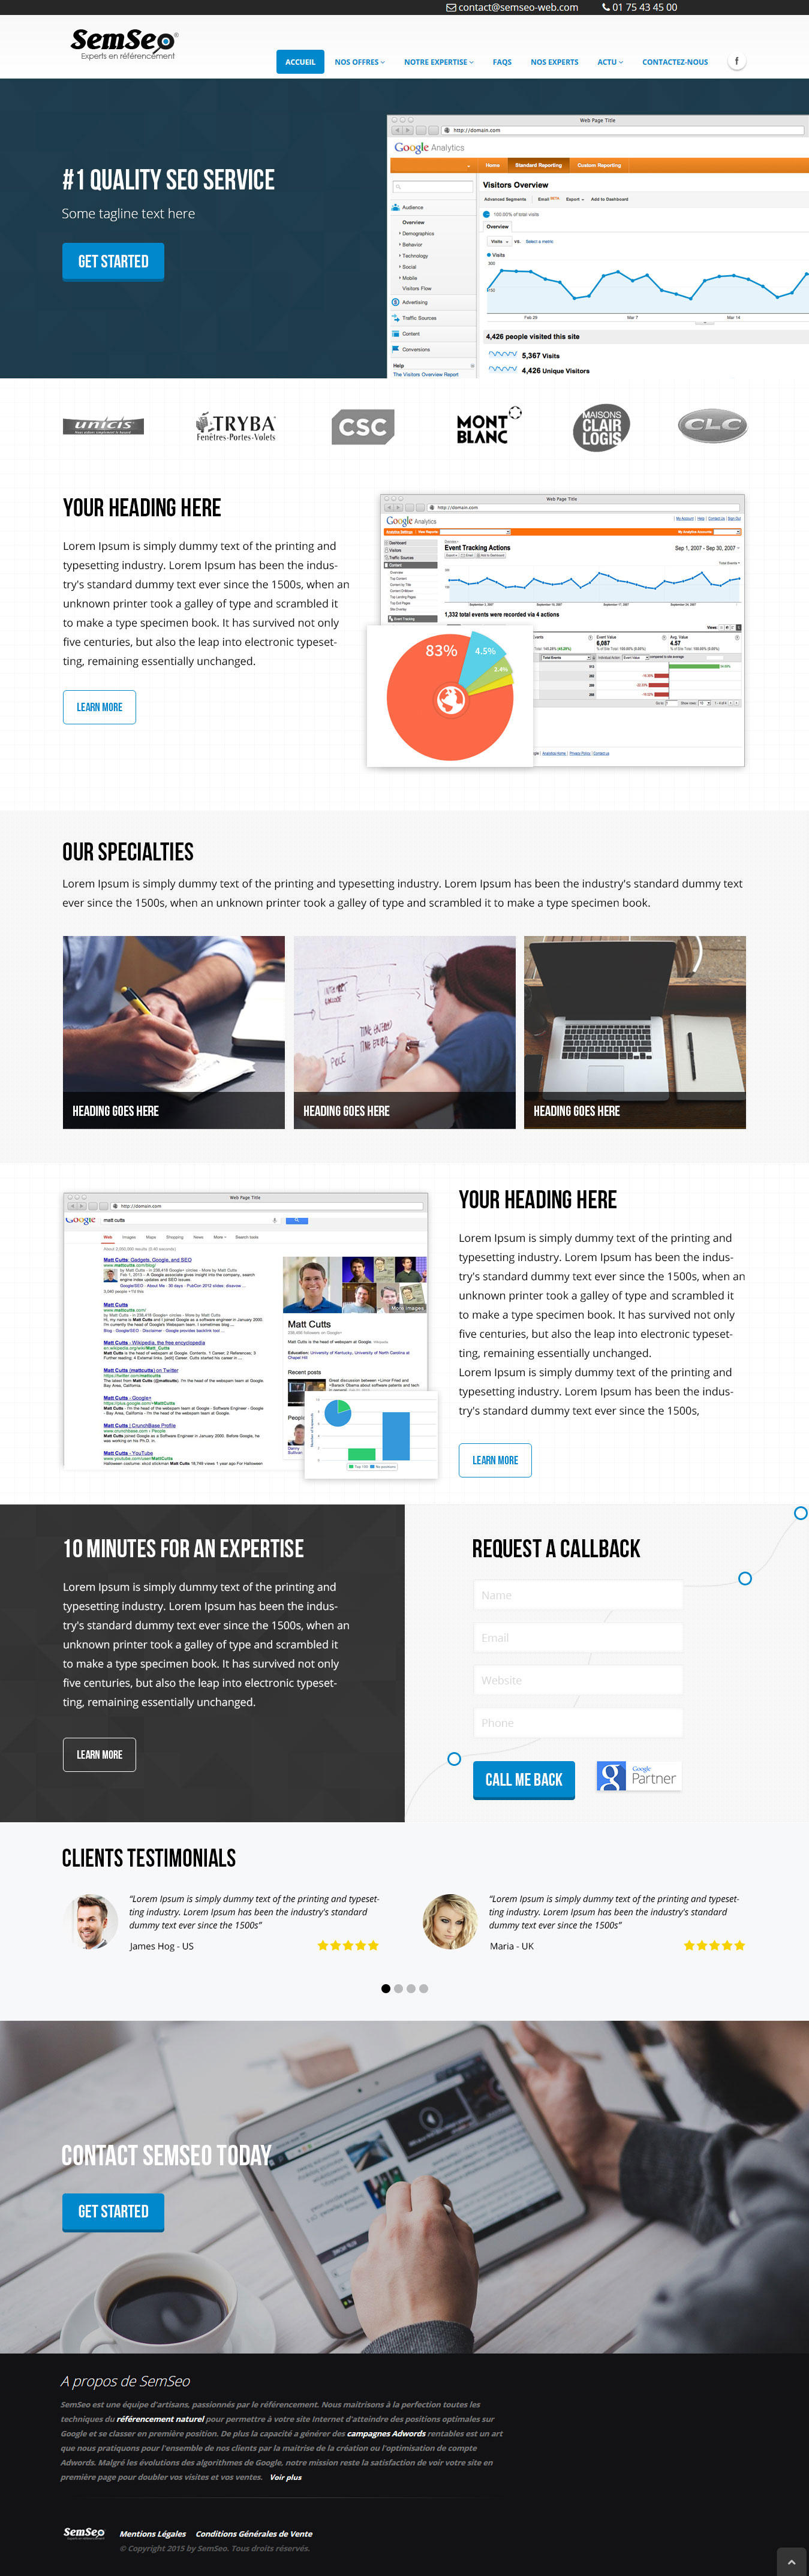 Professional Landing Page Design by BarwalDesigns - 101425